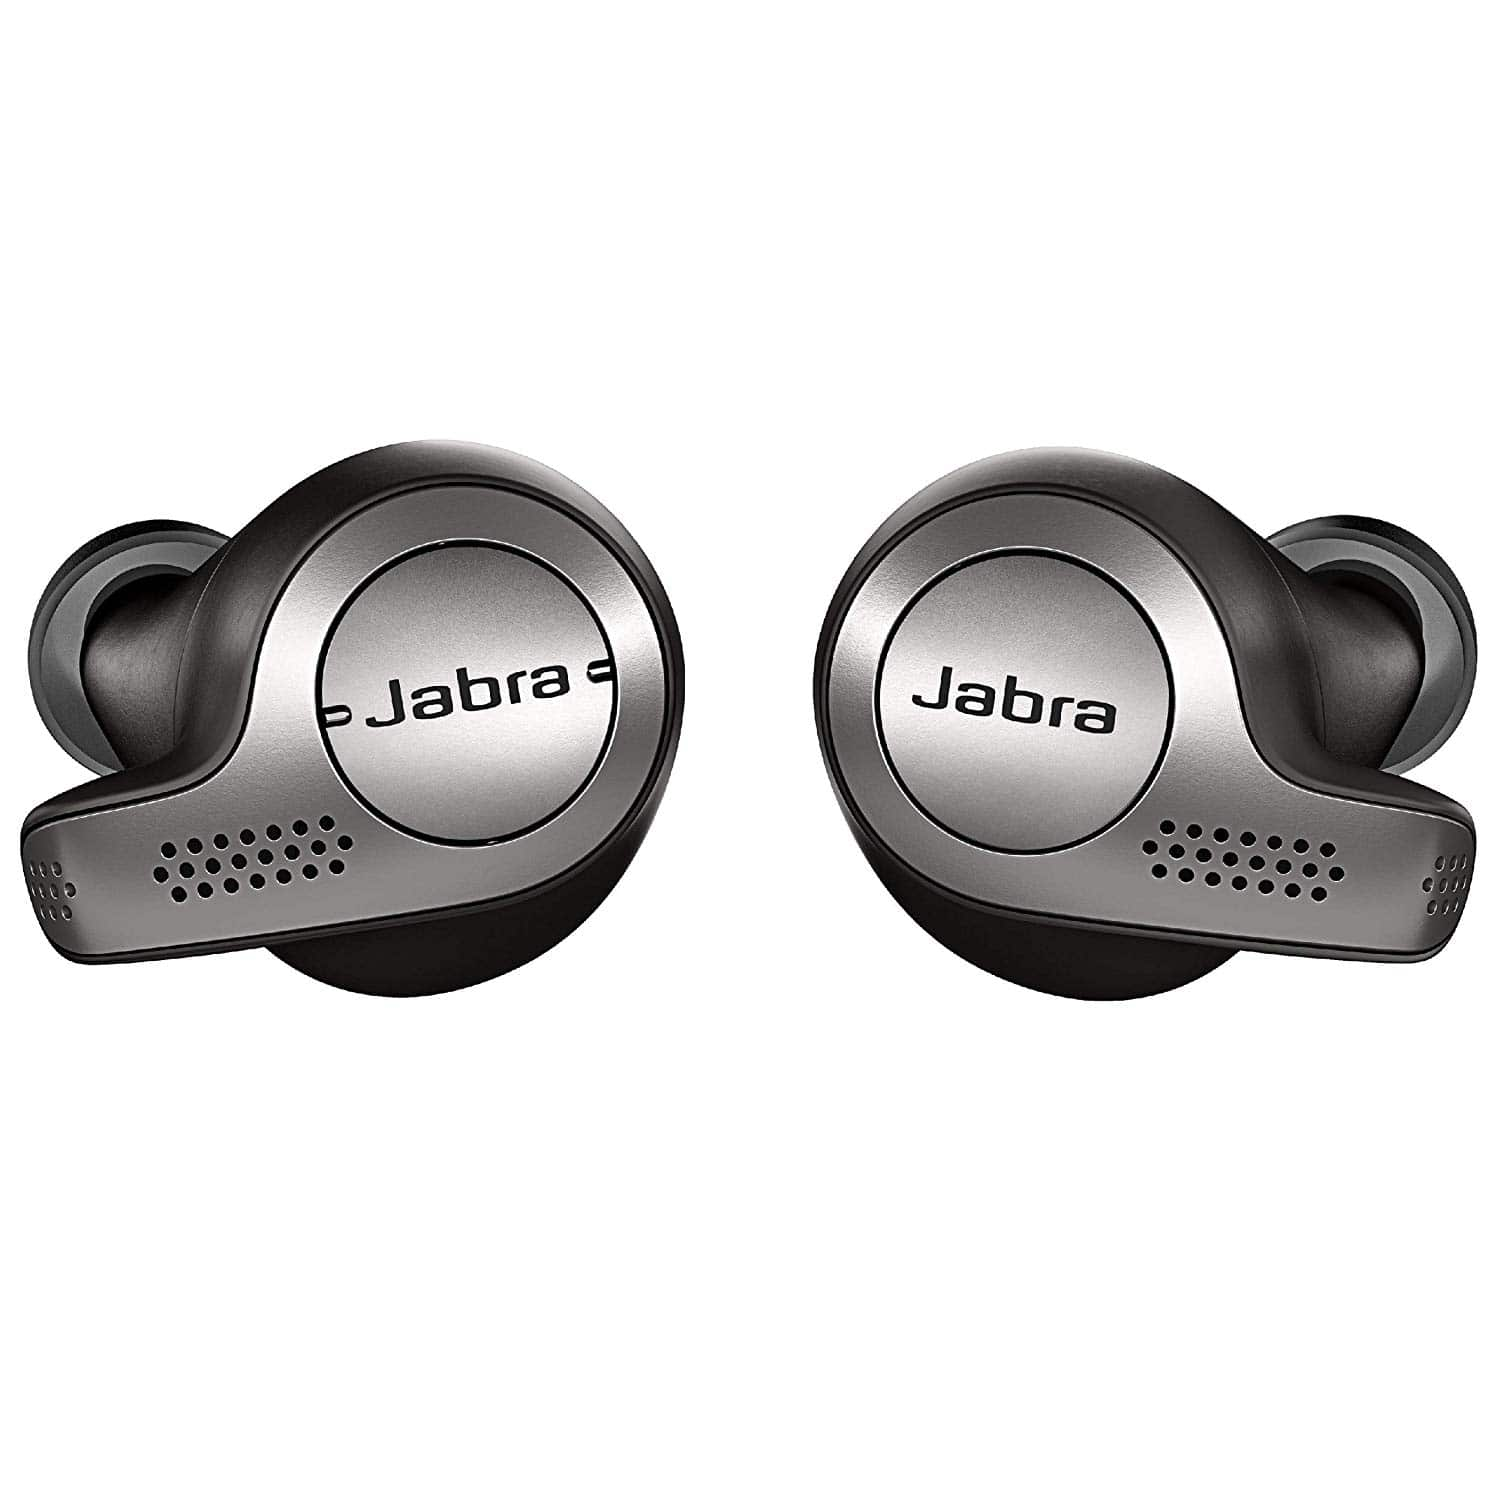 Jabra Elite 65t Earbuds: A Complete Review